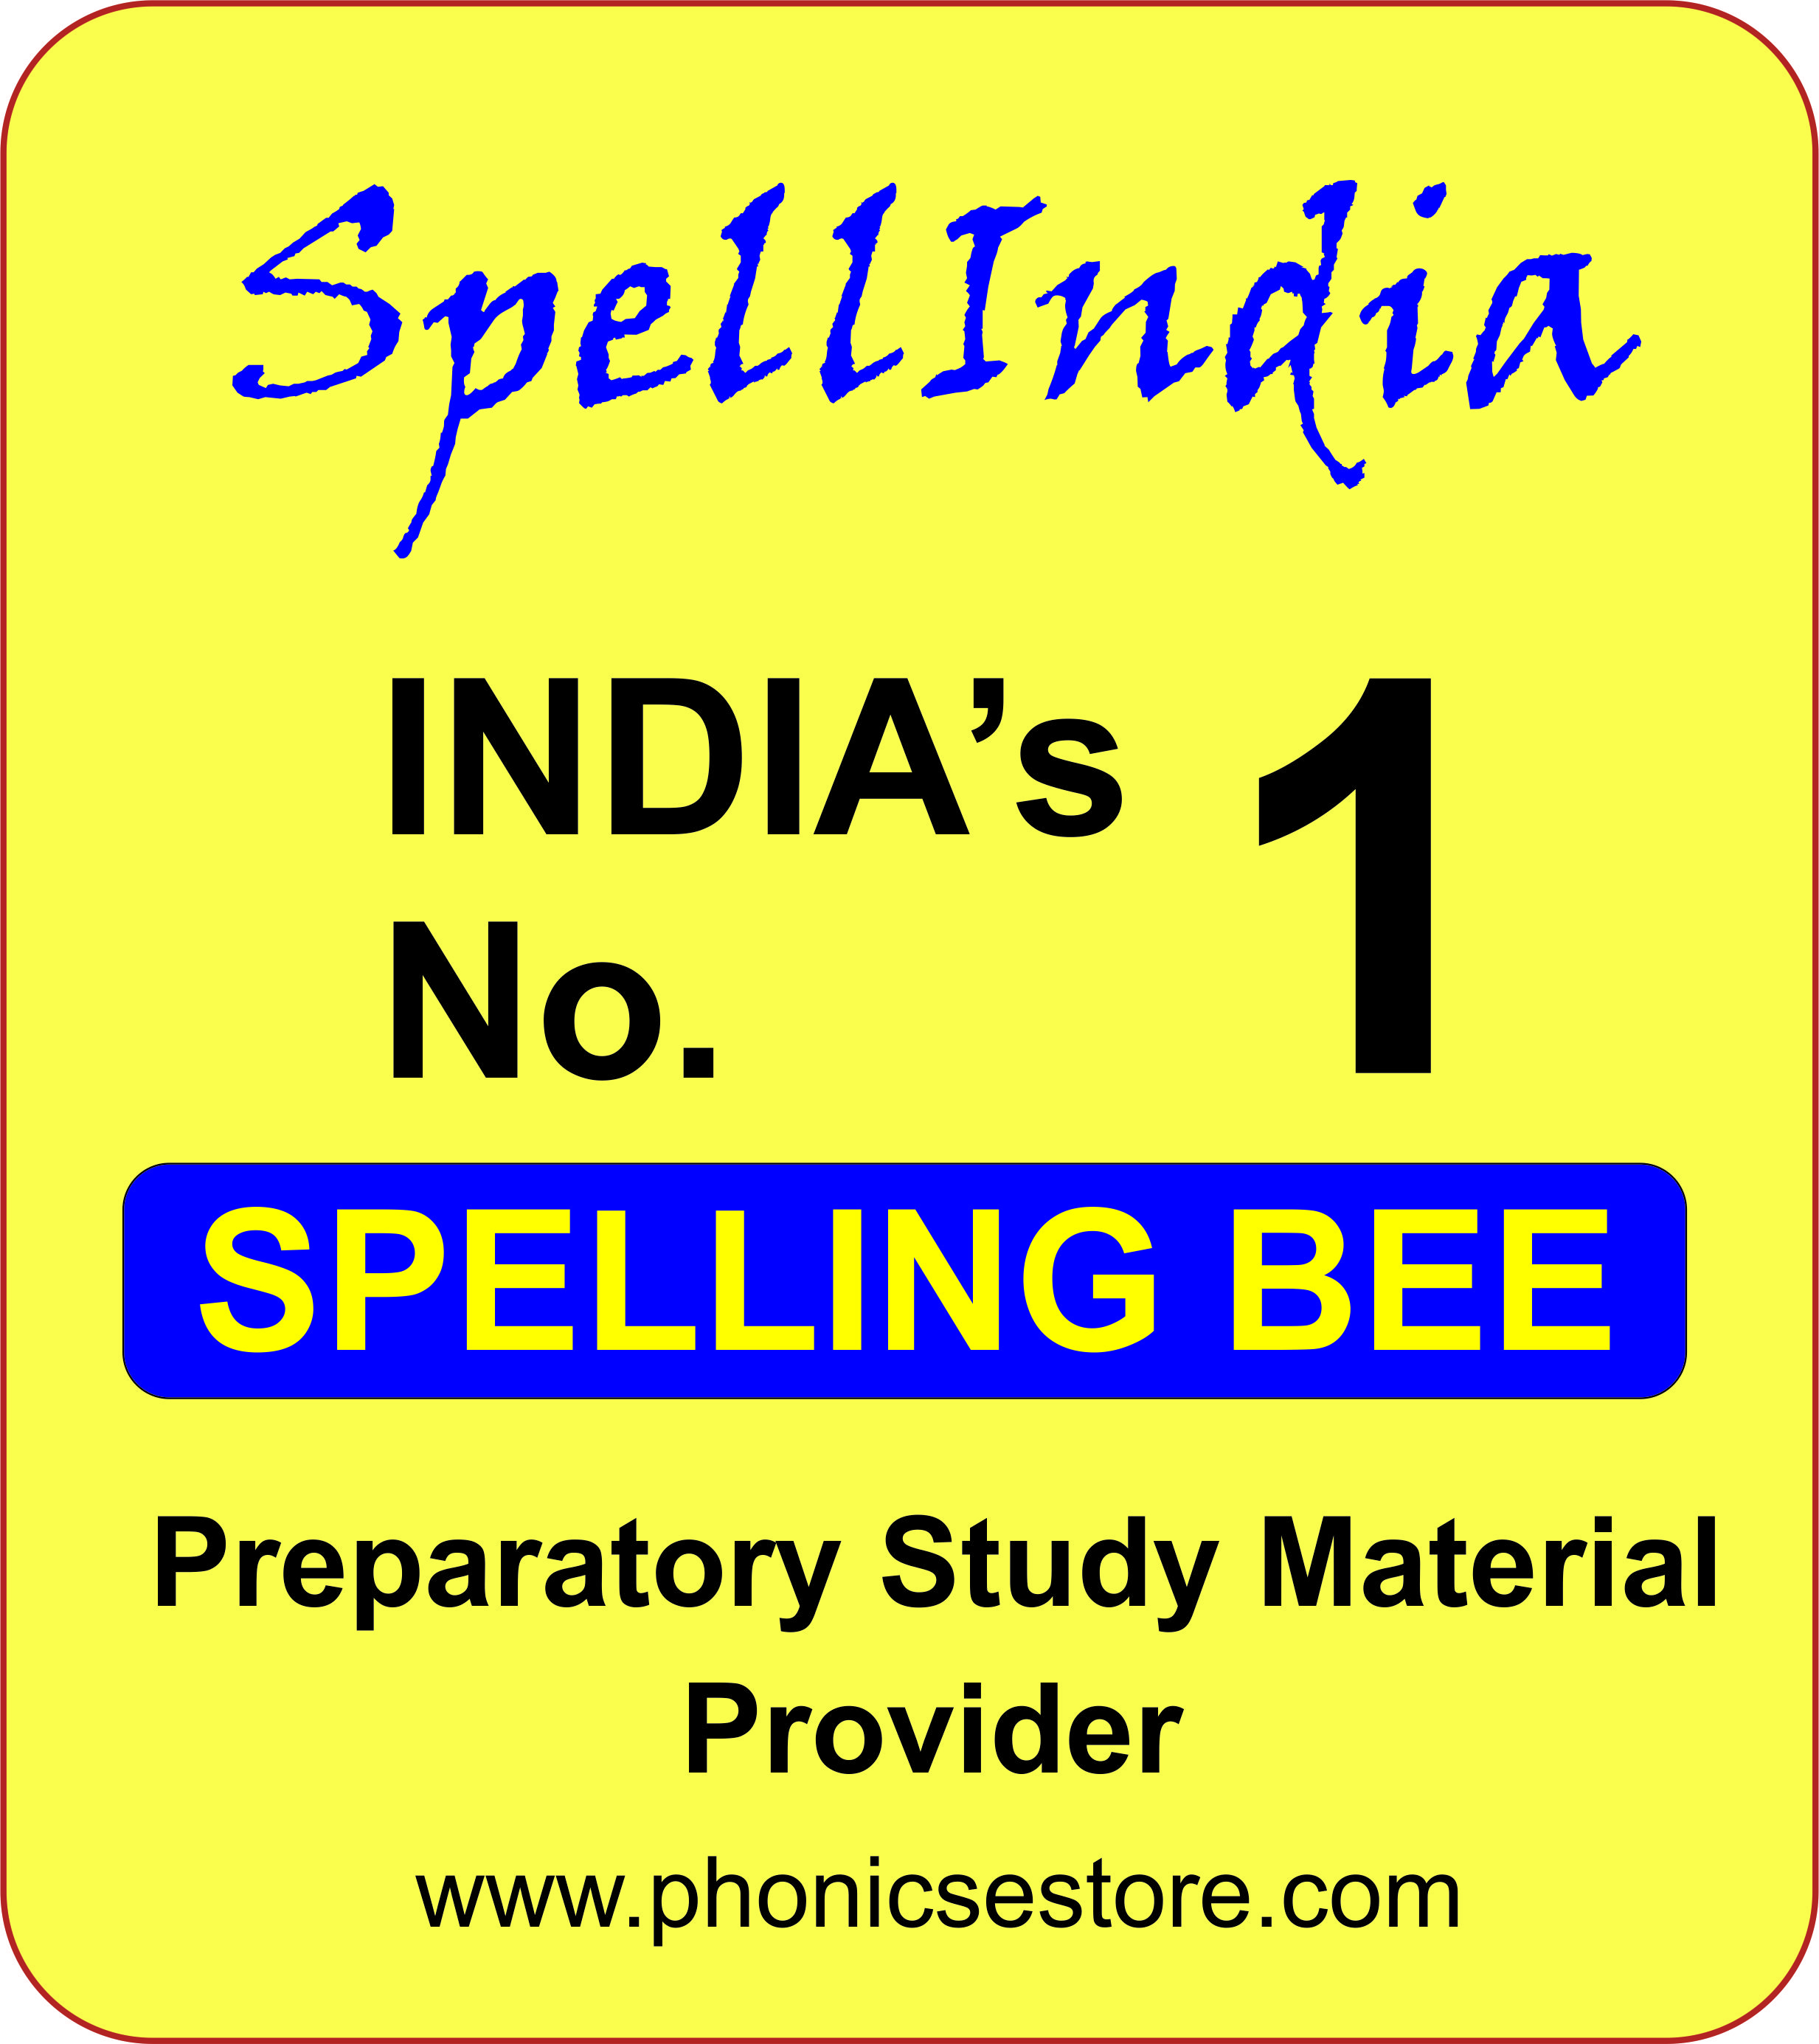 sakshi india spell bee